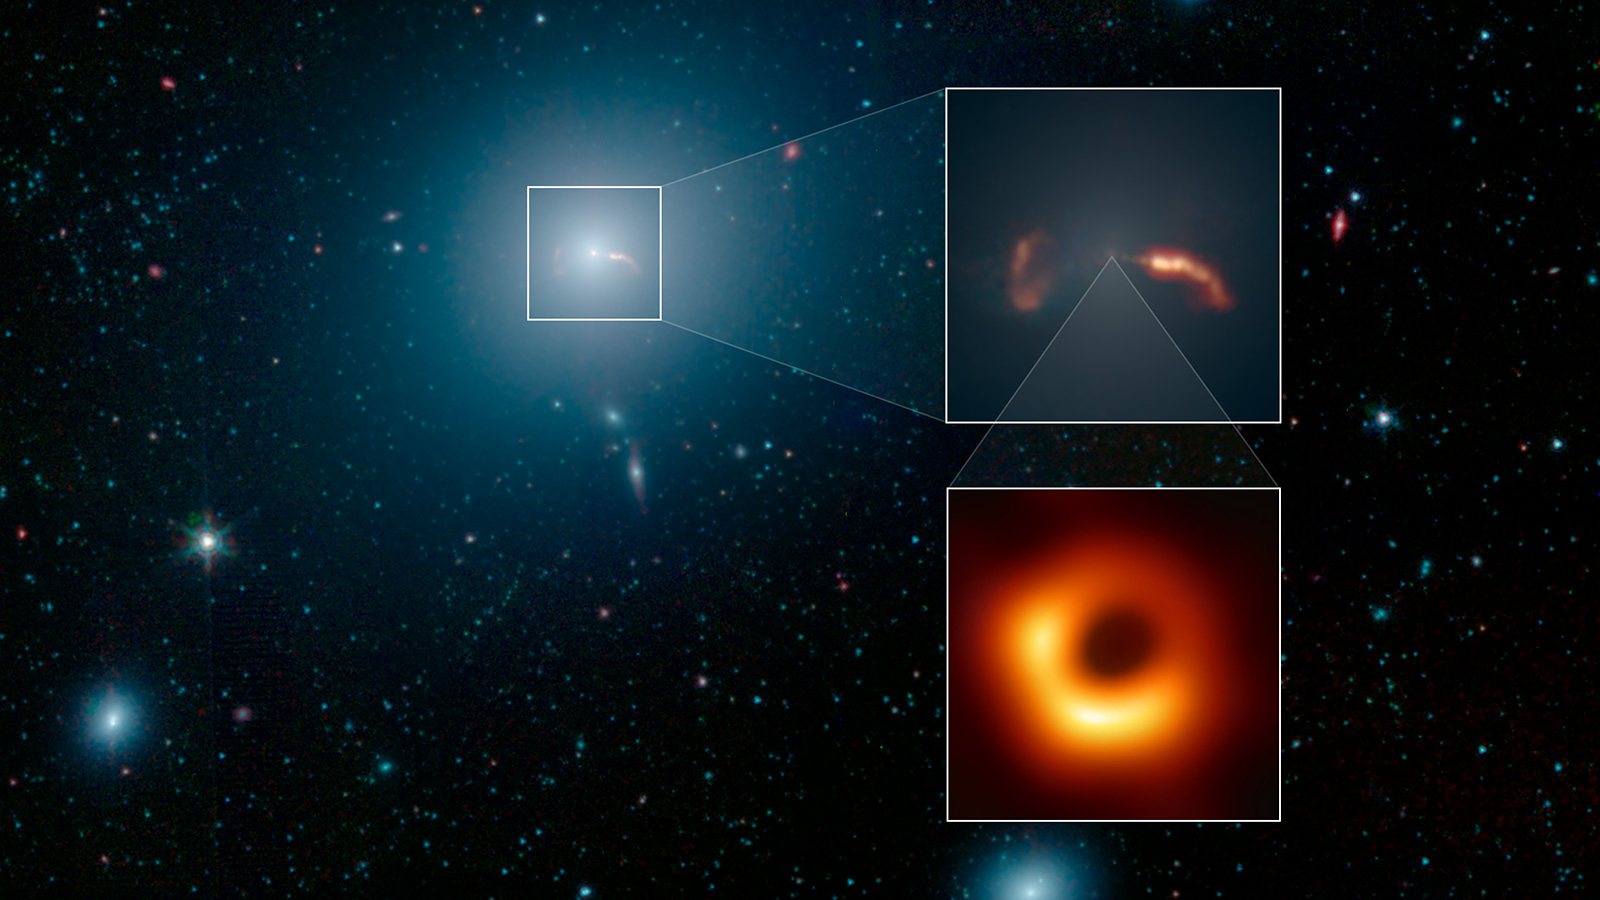 Black hole image shown near image of M87 galaxy